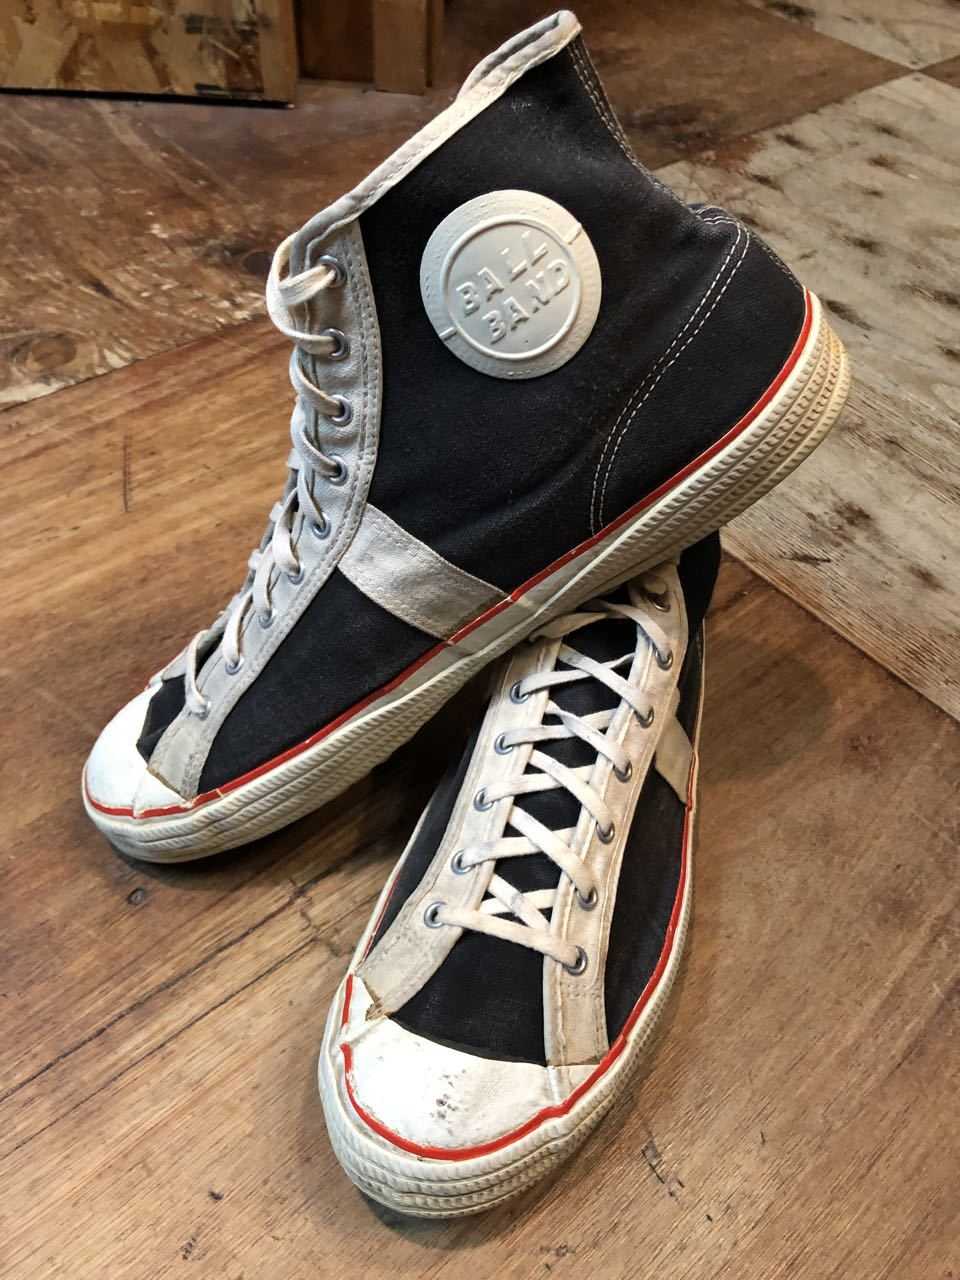 10月15日(火)入荷! 50s VINTAGE   BALLBAND CANVAS SHOES !_c0144020_18052681.jpg